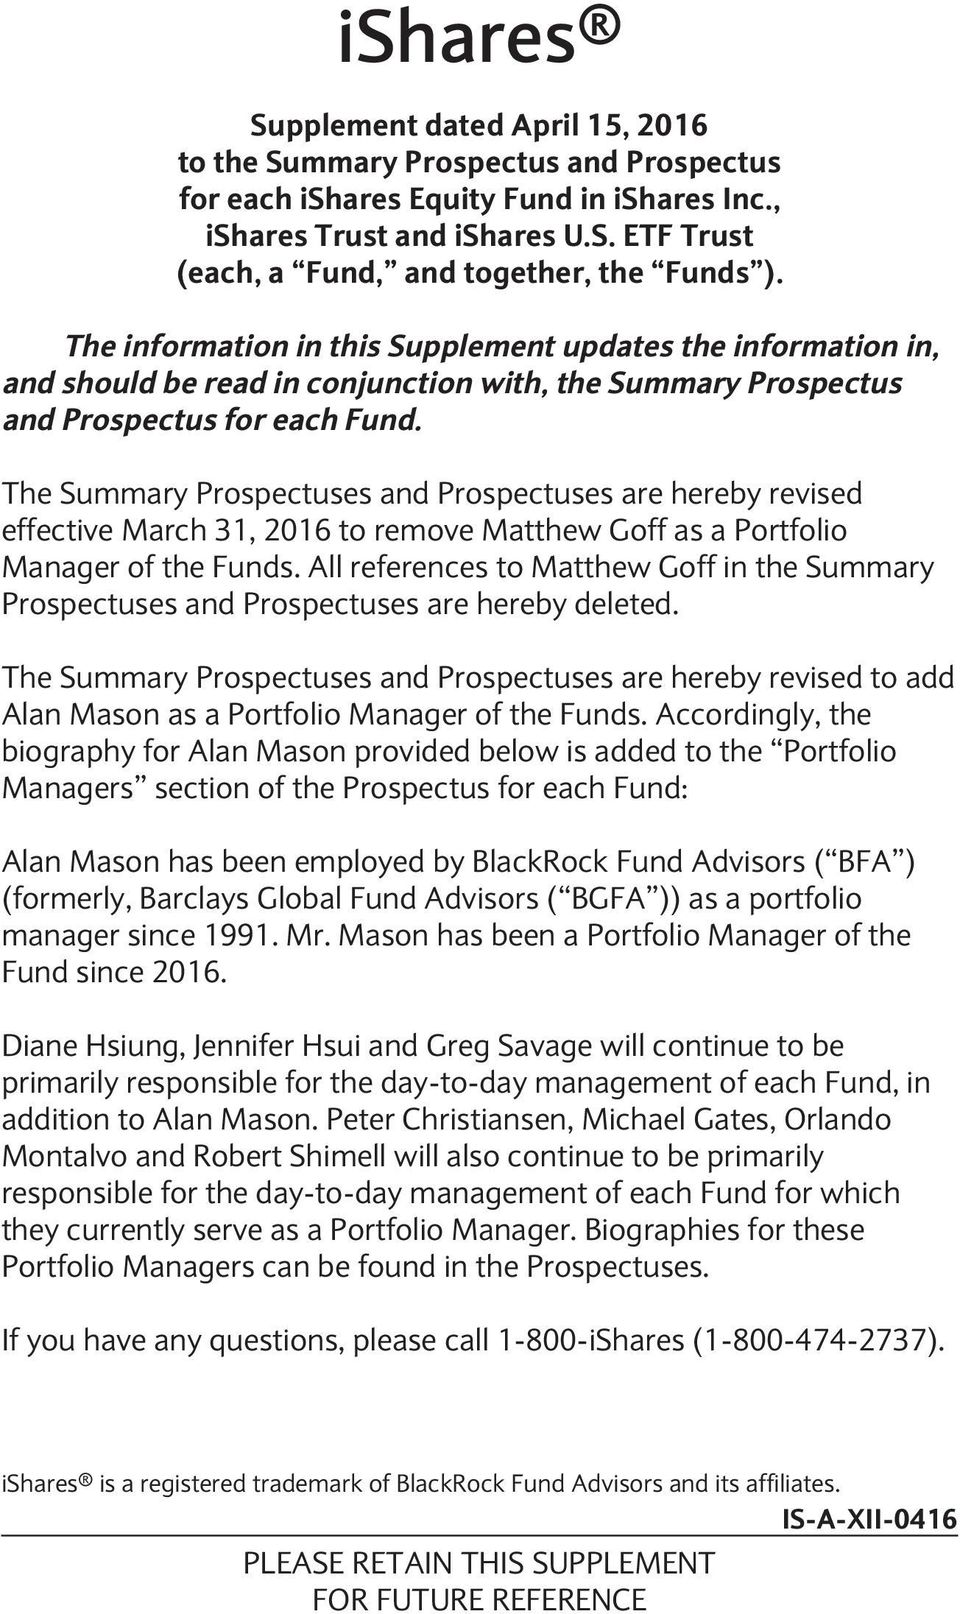 The Summary Prospectuses and Prospectuses are hereby revised effective March 31, 2016 to remove Matthew Goff as a Portfolio Manager of the Funds.